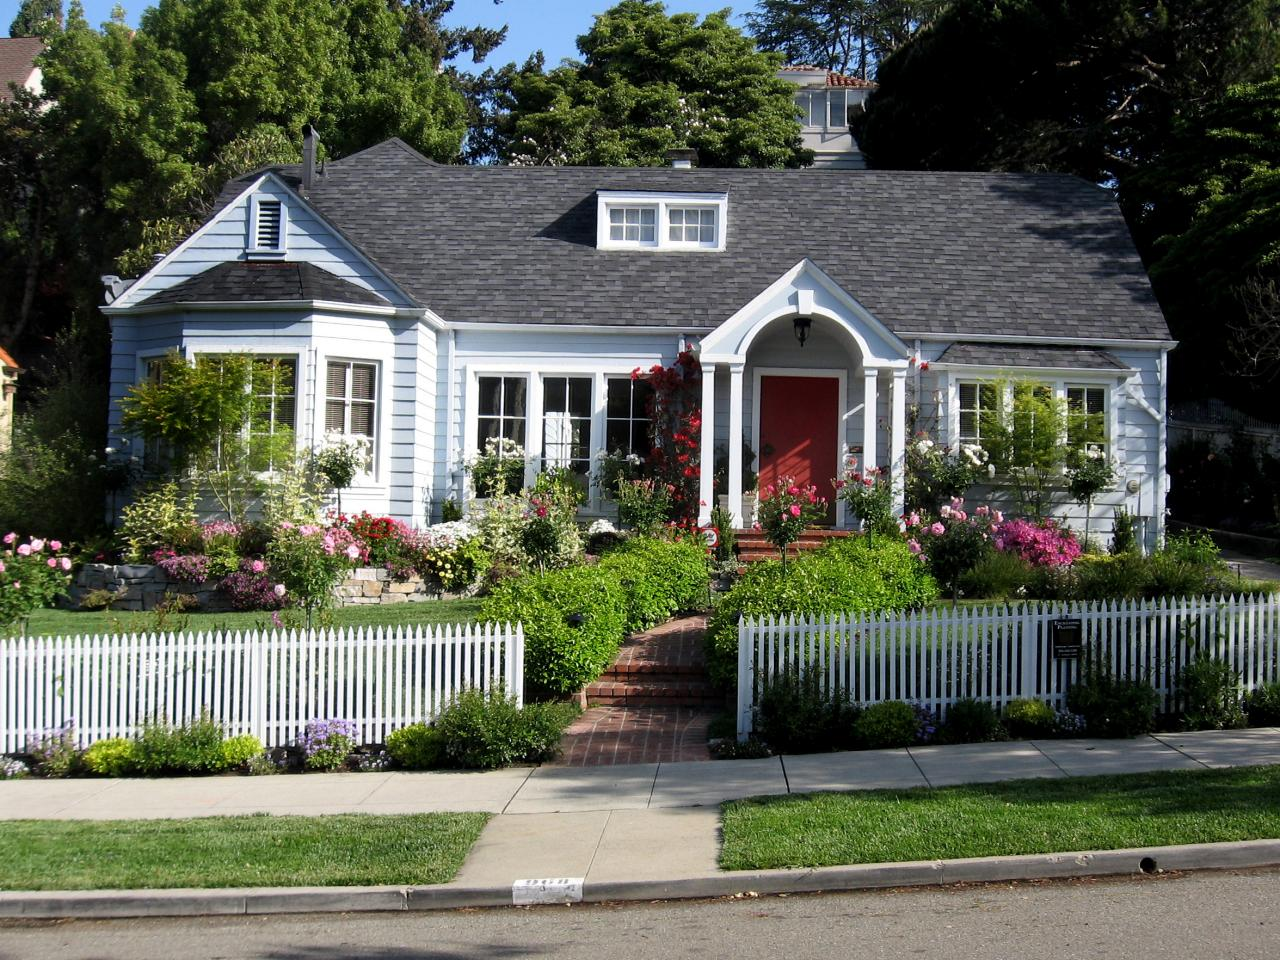 Landscaping tips that can help sell your home hgtv for Landscape design usa